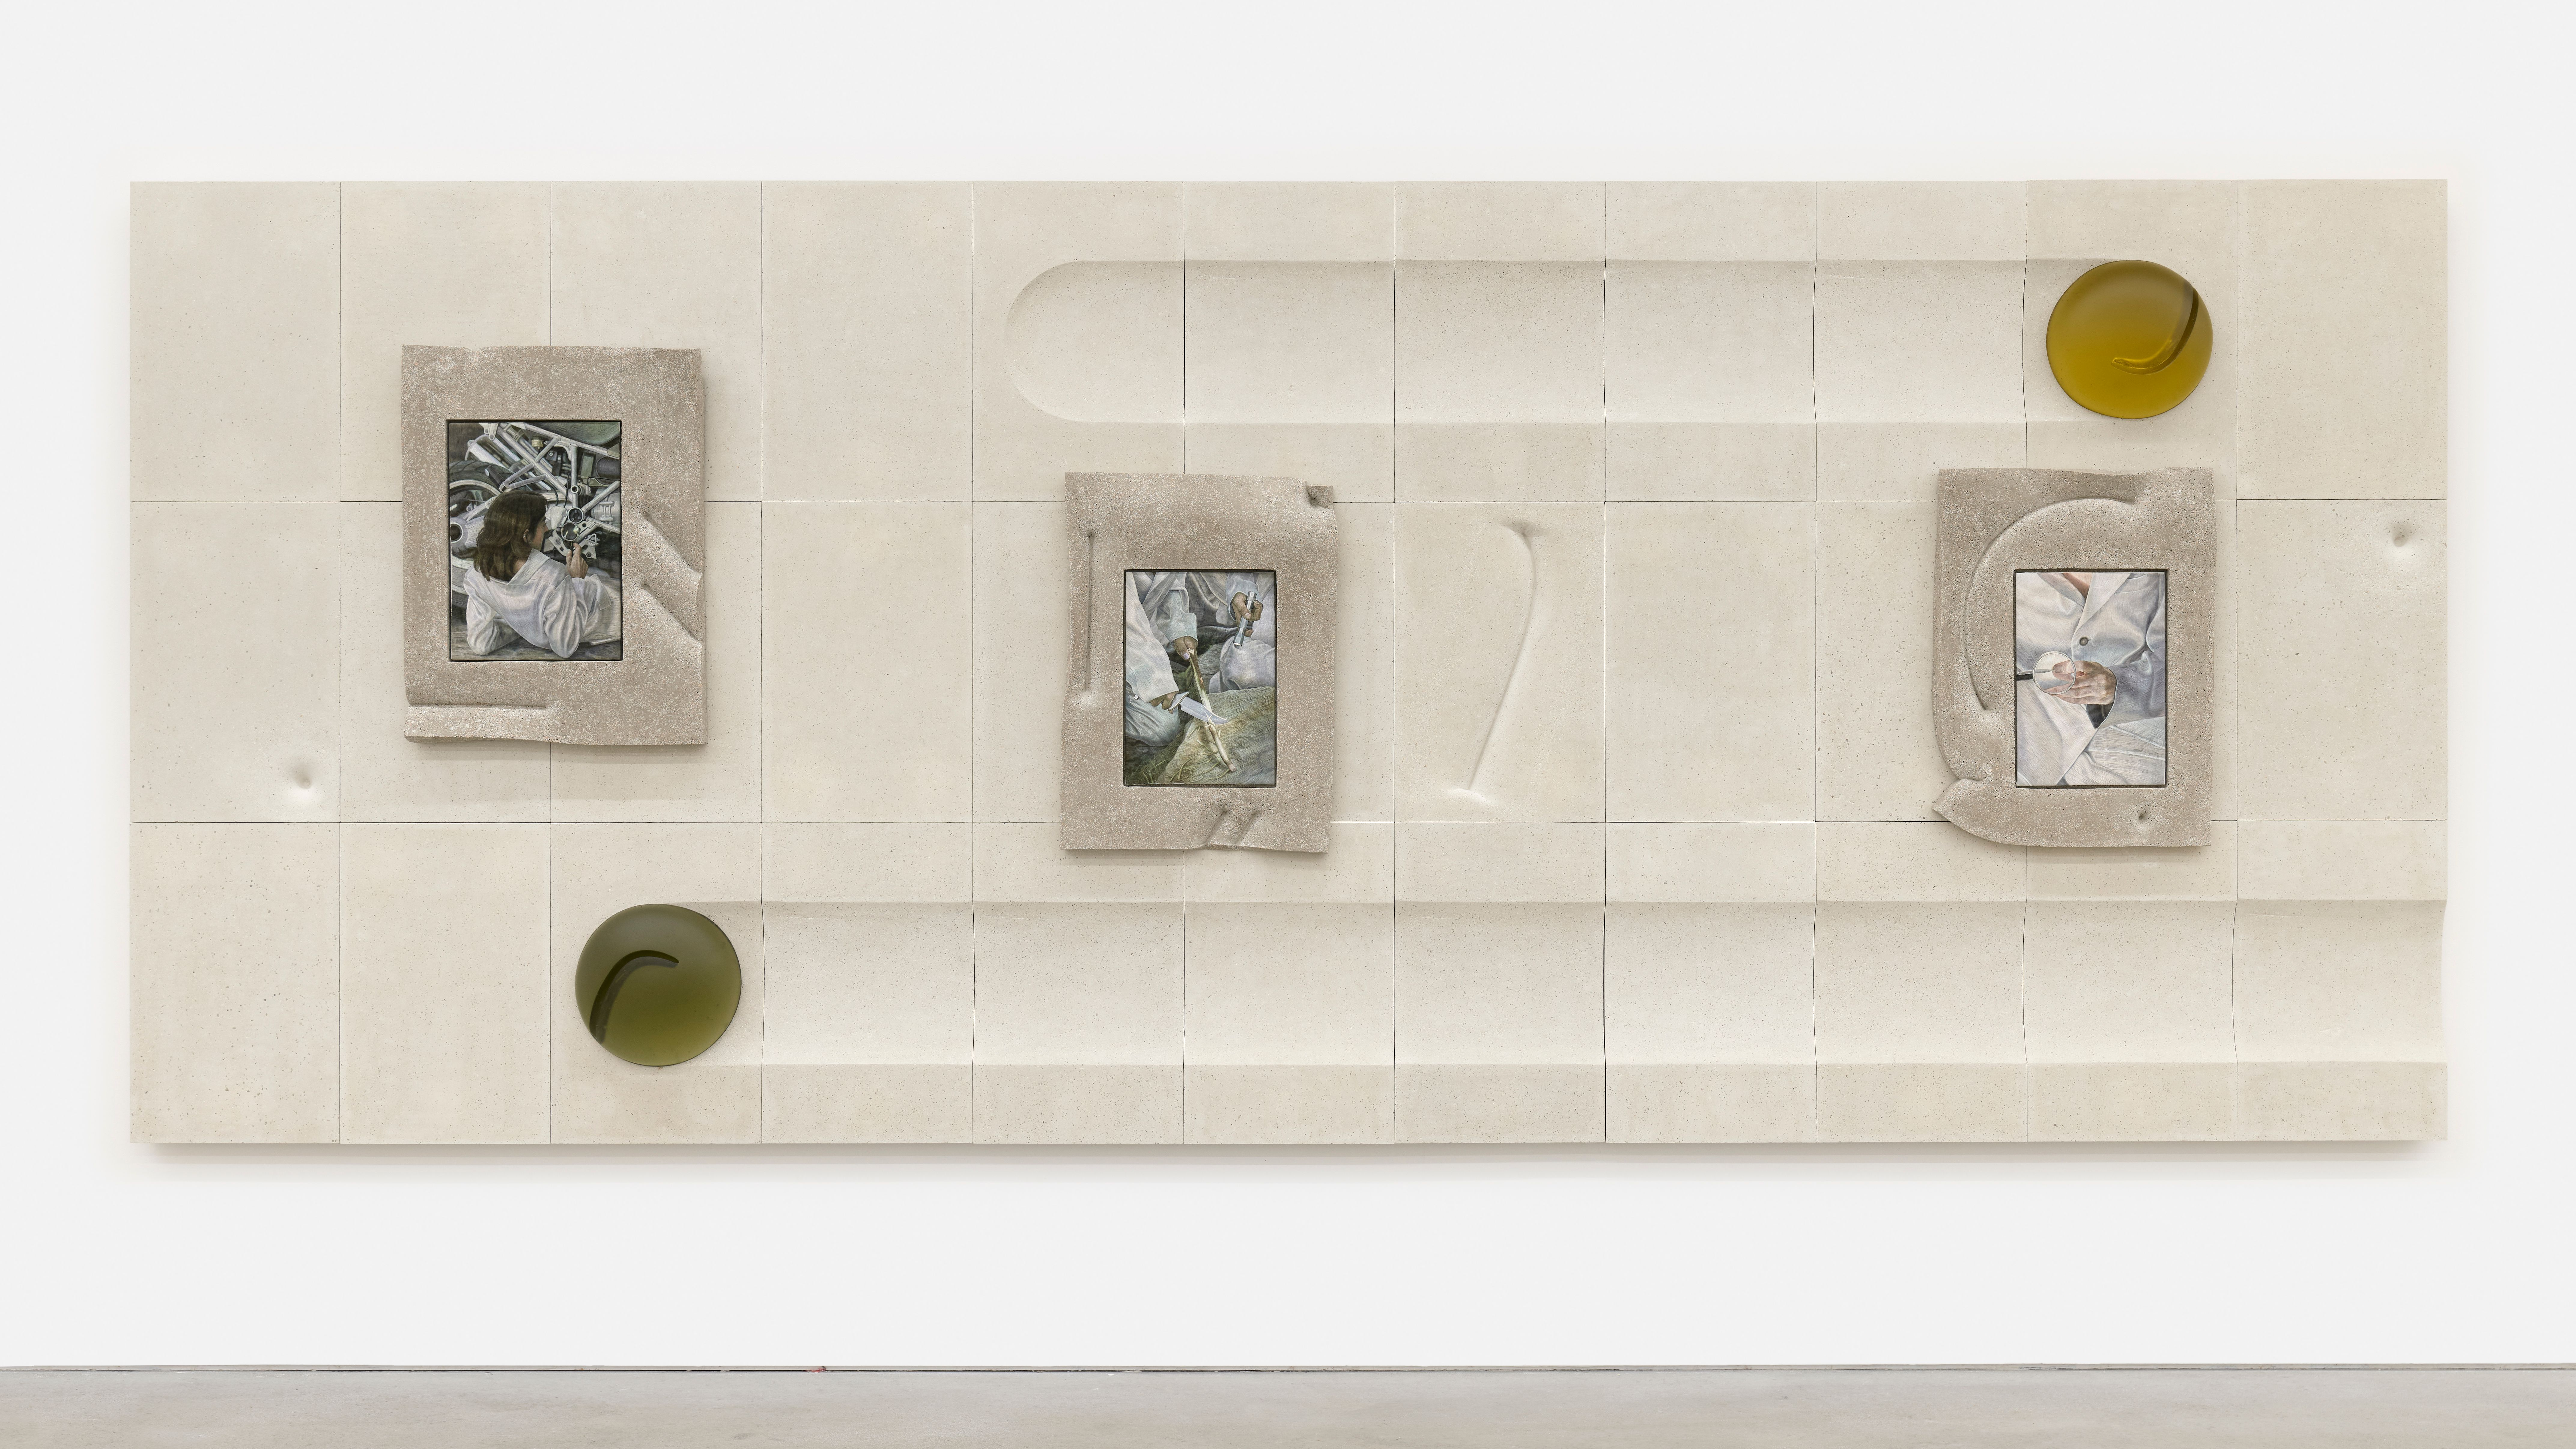 KLÁRA HOSNEDLOVÁ Untitled (from the series Nest) , 2020 cotton thread, terrazzo frame, terrazzo panelling, mould melted glass 201 x 484 x 24 cm 78 3/4 x 190 1/2 x 9 1/2 in unique Photo: def image Courtesy: the artist; Kraupa-Tuskany Zeidler, Berlin